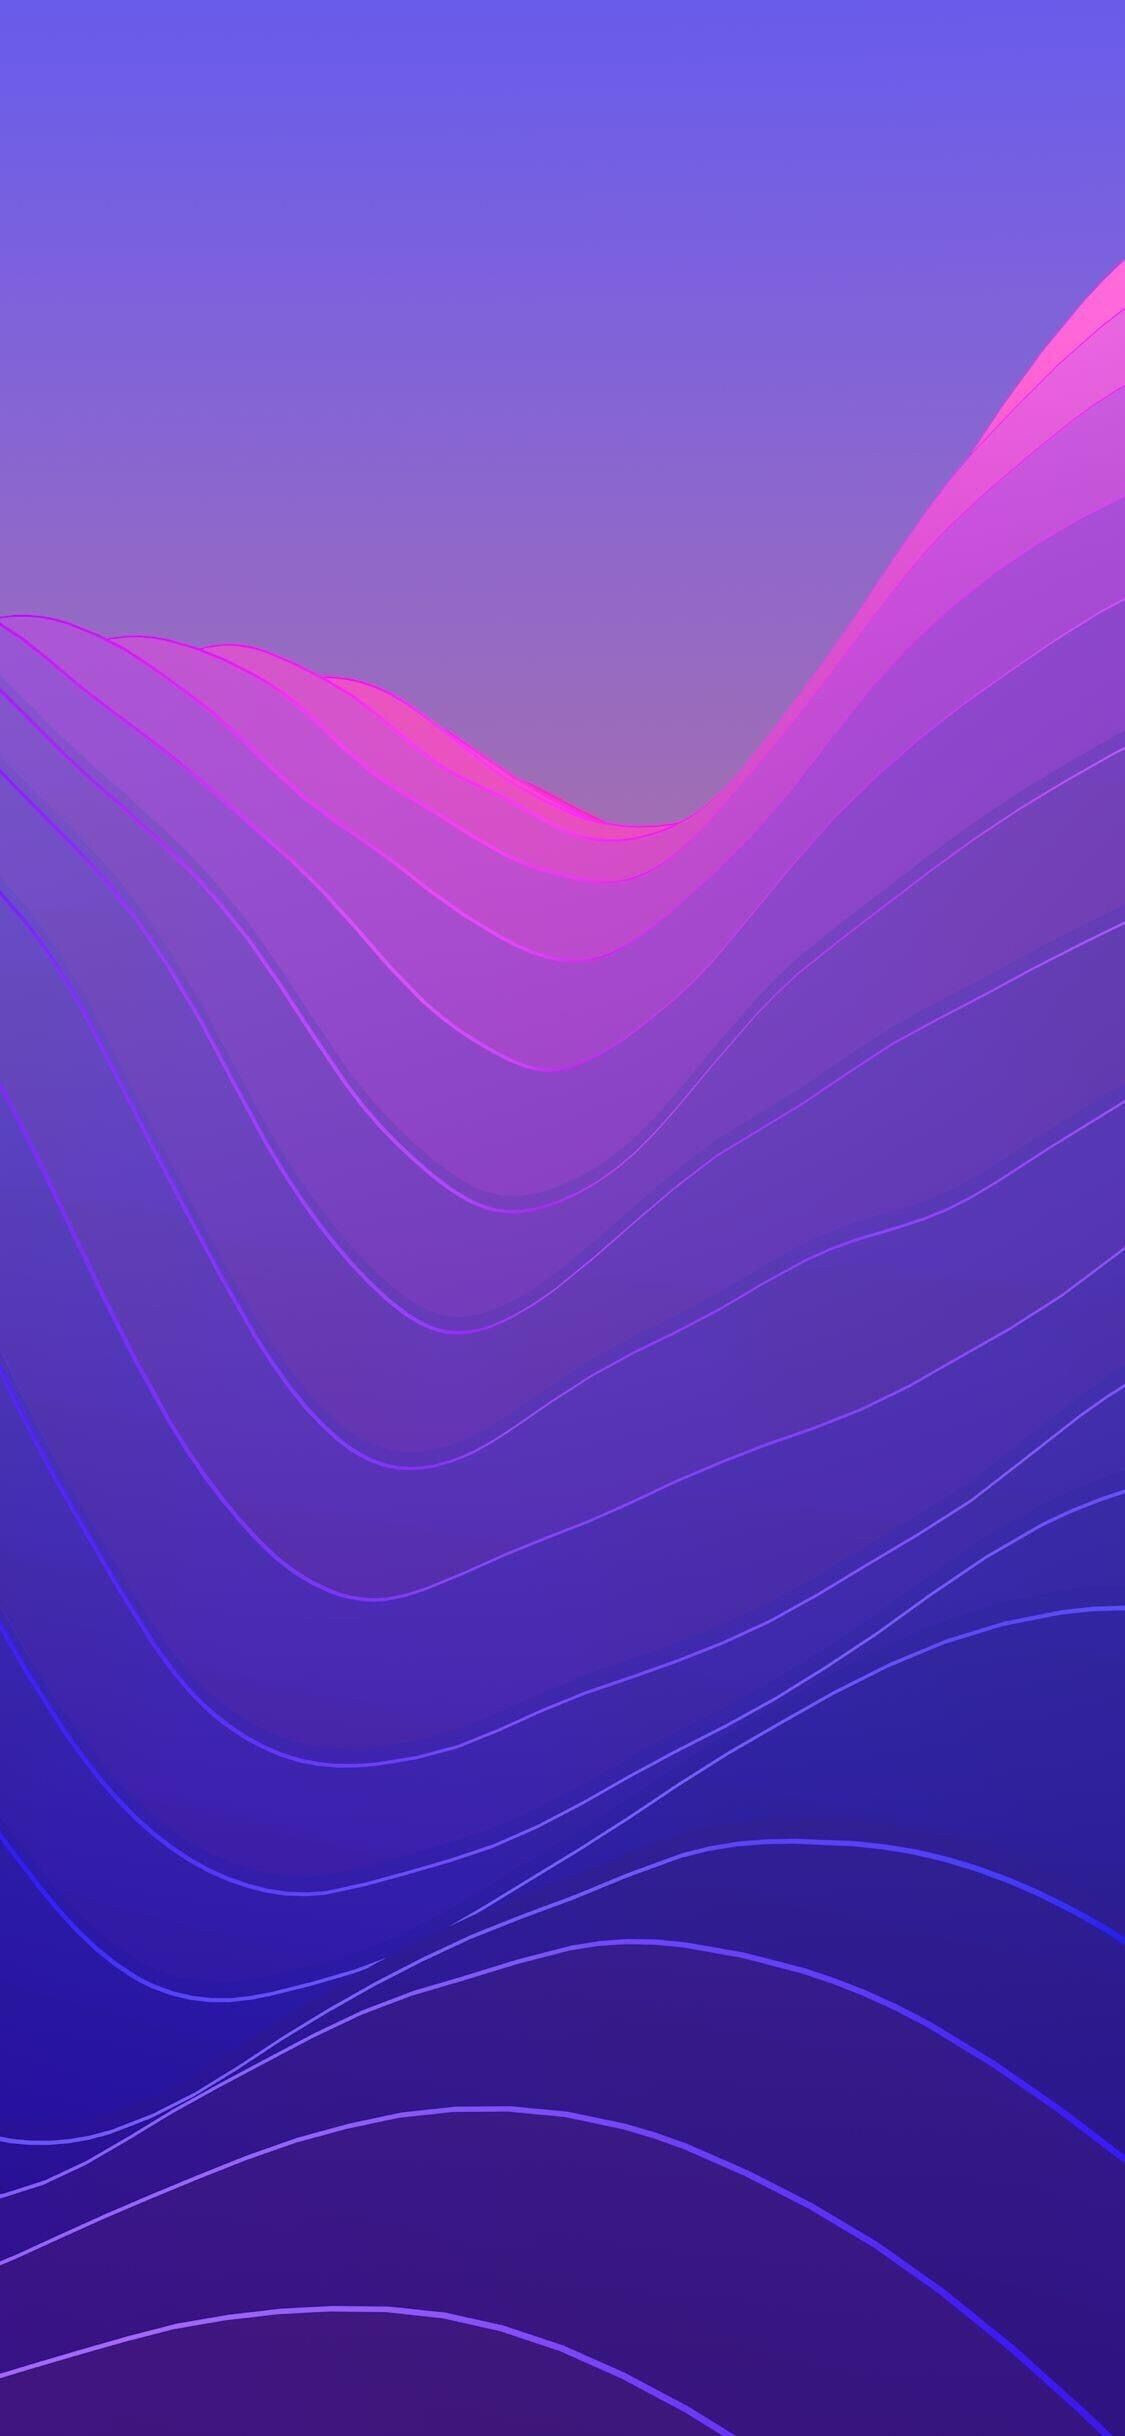 Pink And Purple Iphone Wallpaper 83 Images